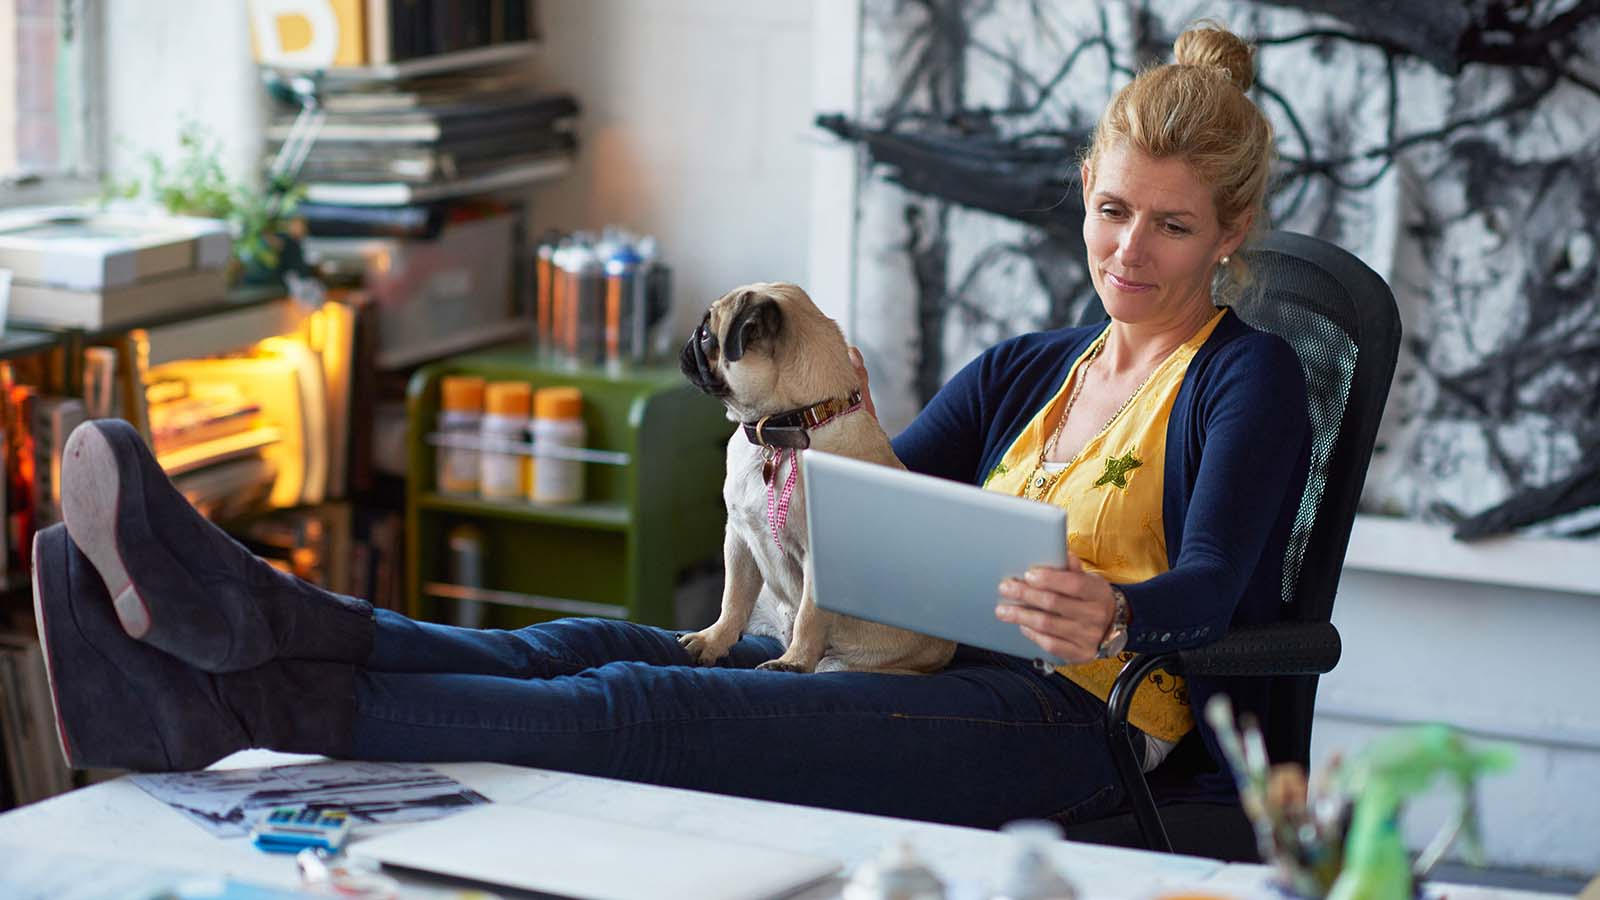 Woman with her feet on a desk and a dog in her lap reading a tablet.